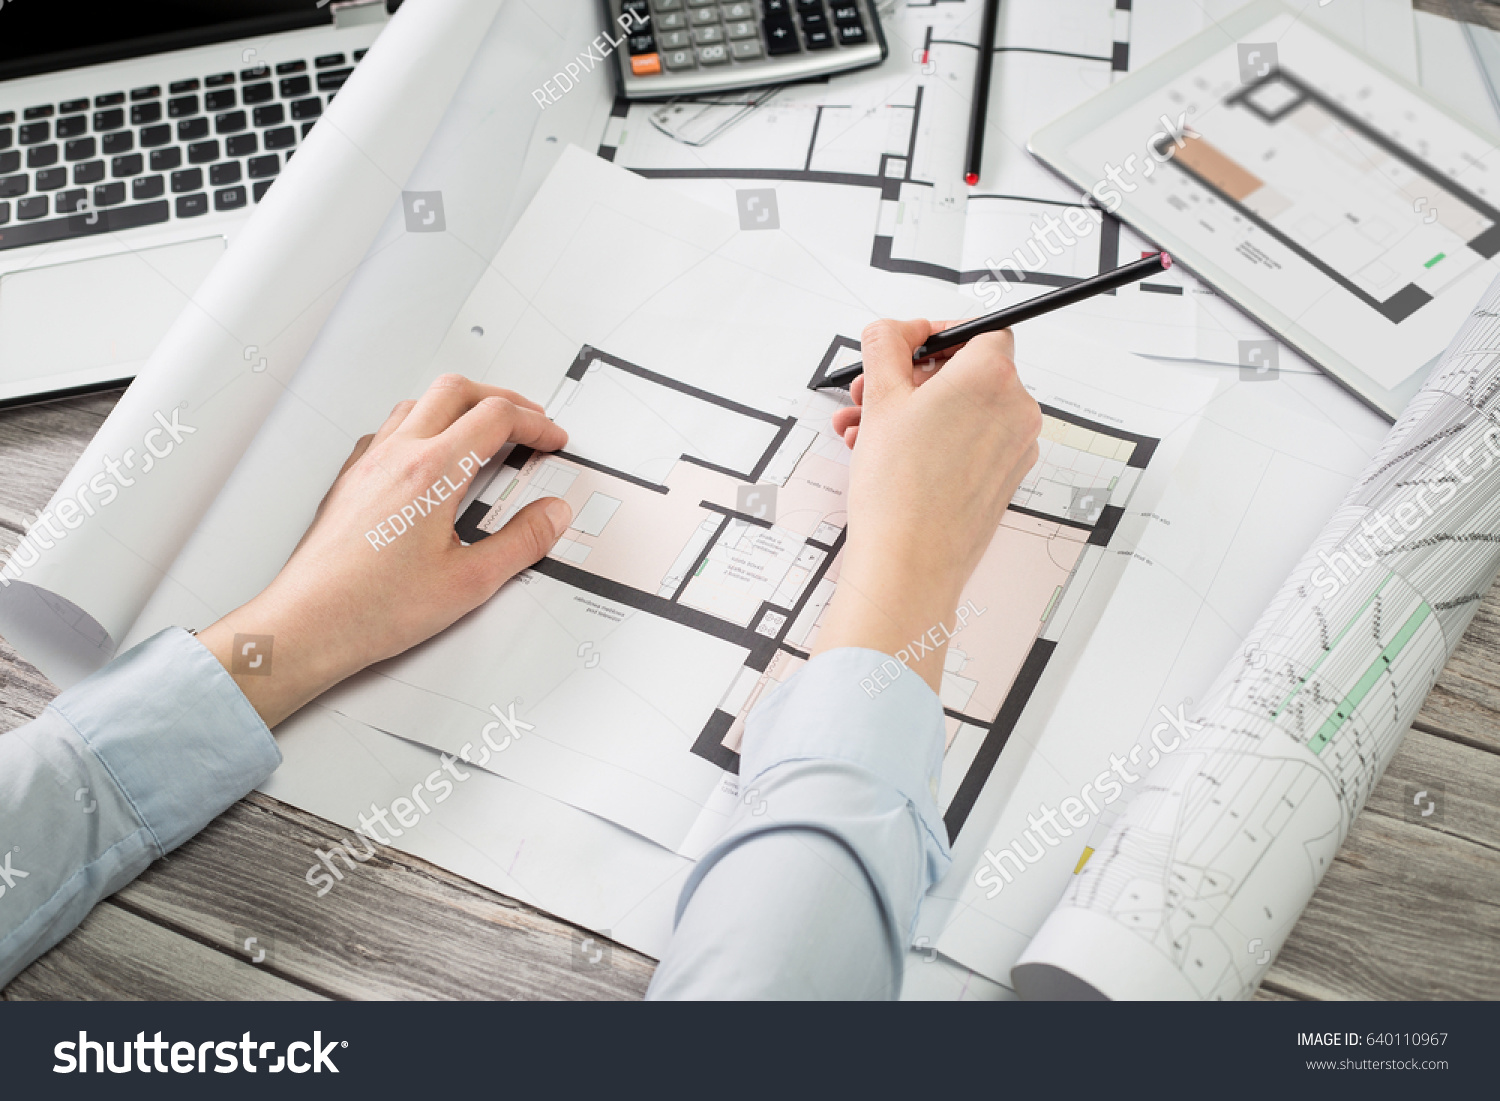 Architect drawing project blueprint business working stock photo architect drawing project blueprint business working design ruler table workplace malvernweather Gallery